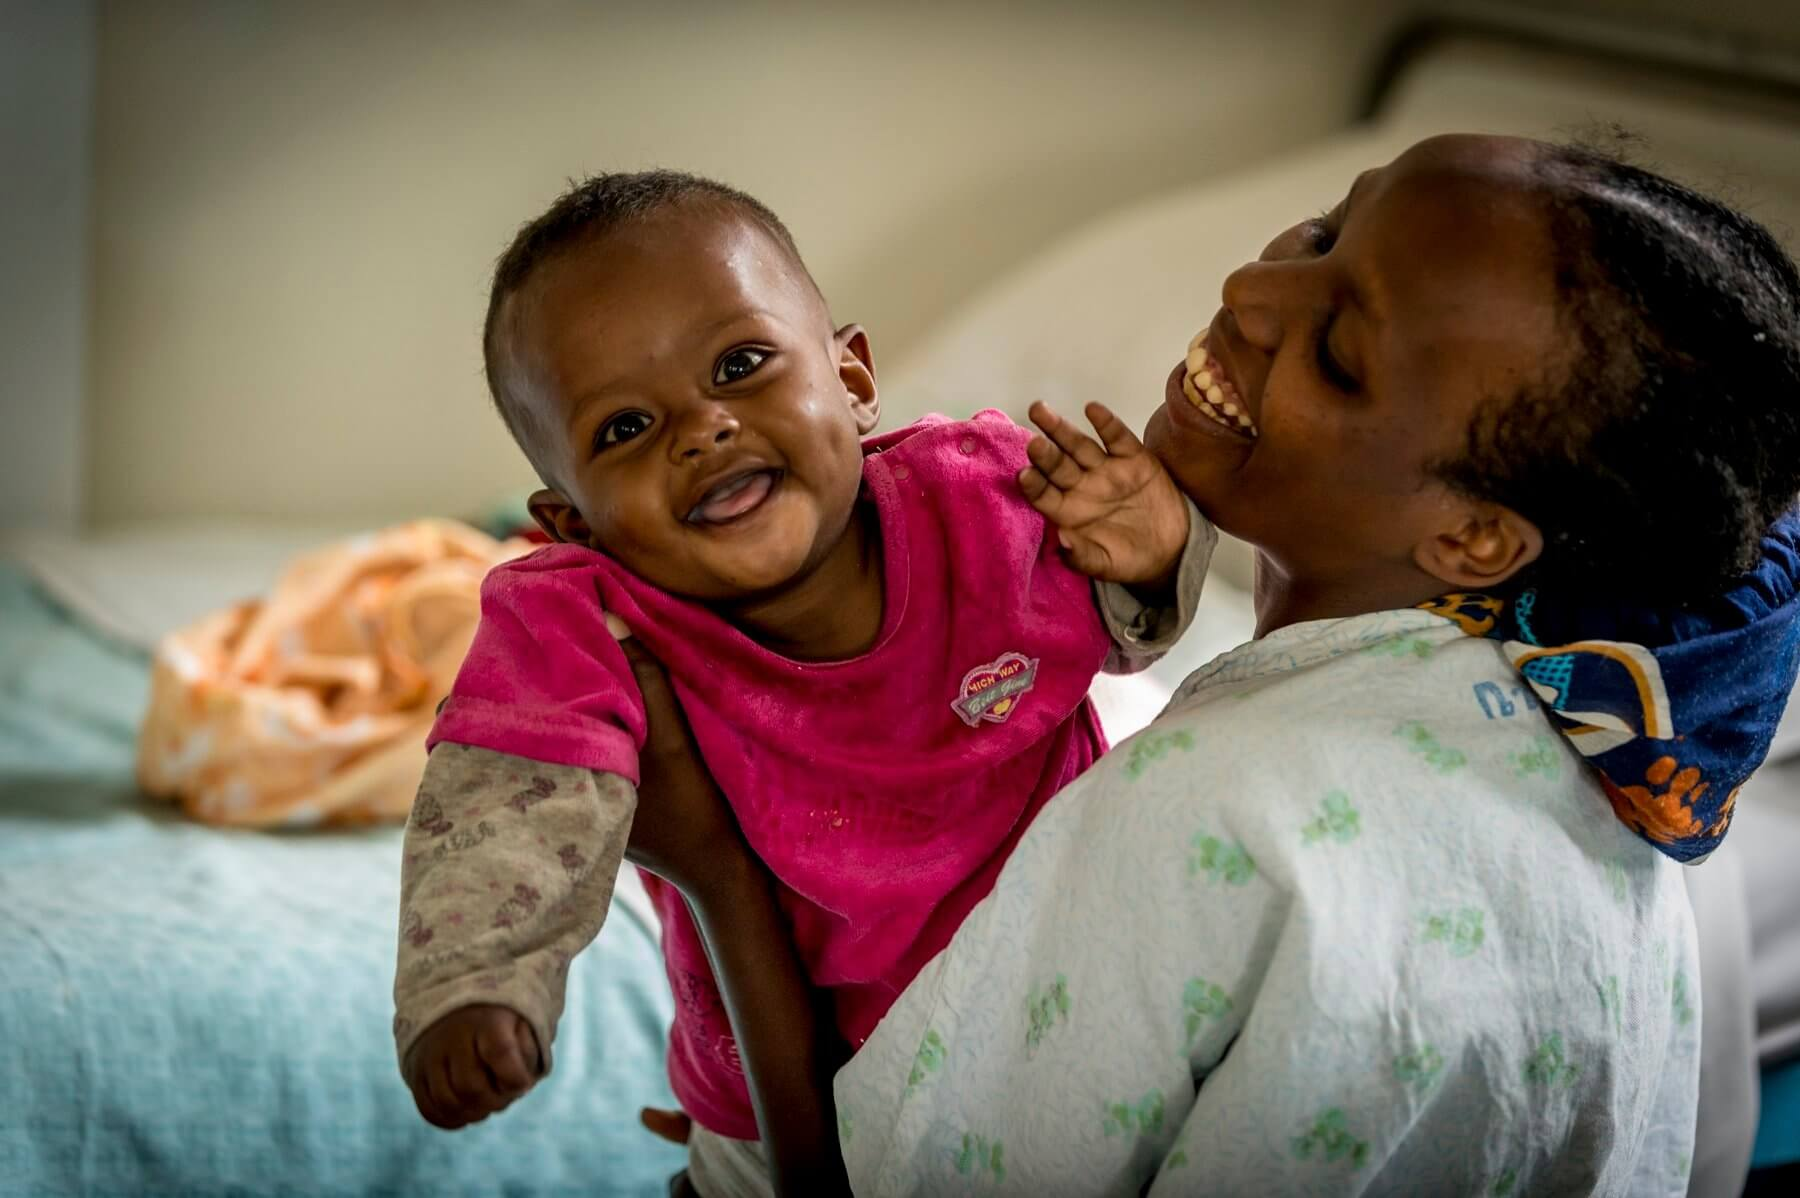 baby | Catherine Hamlin Fistula Foundation (USA) | Working to eradicate obstetric fistula. Forever.